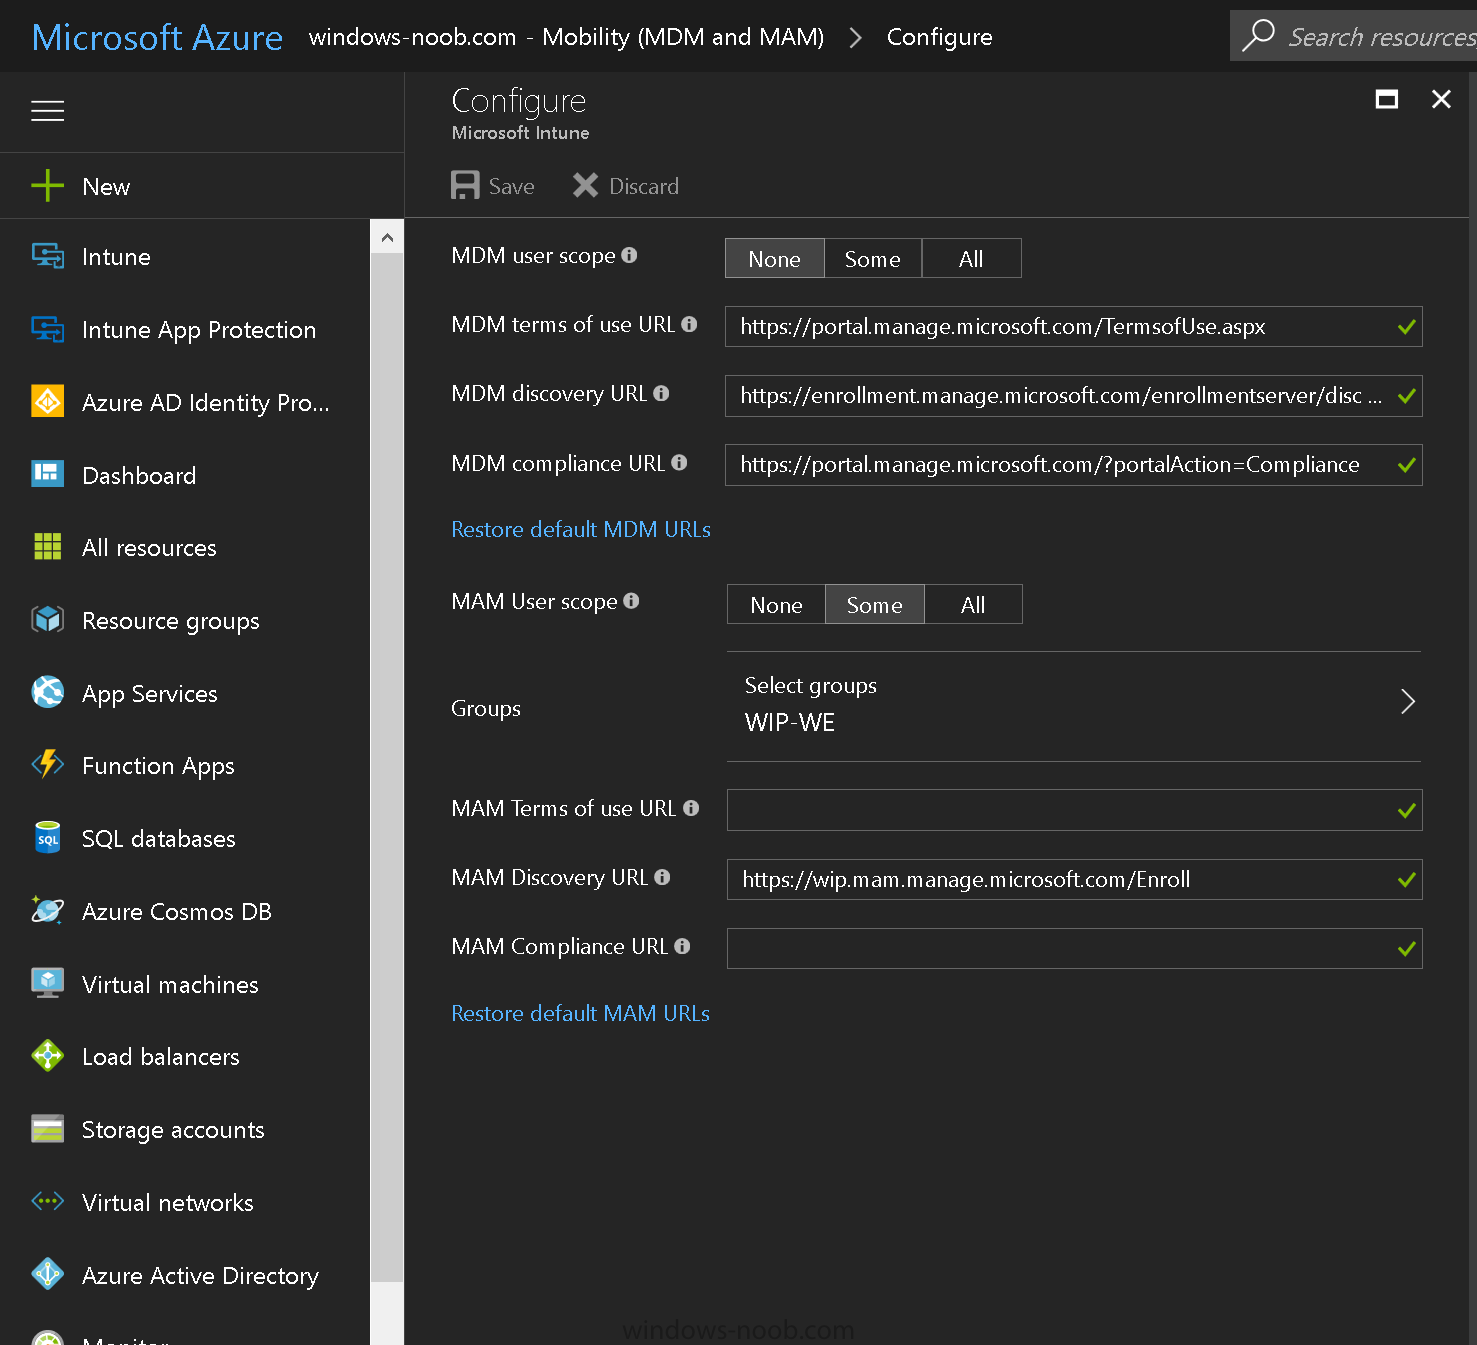 How can I enable MDM auto-enrollment for Microsoft Intune in